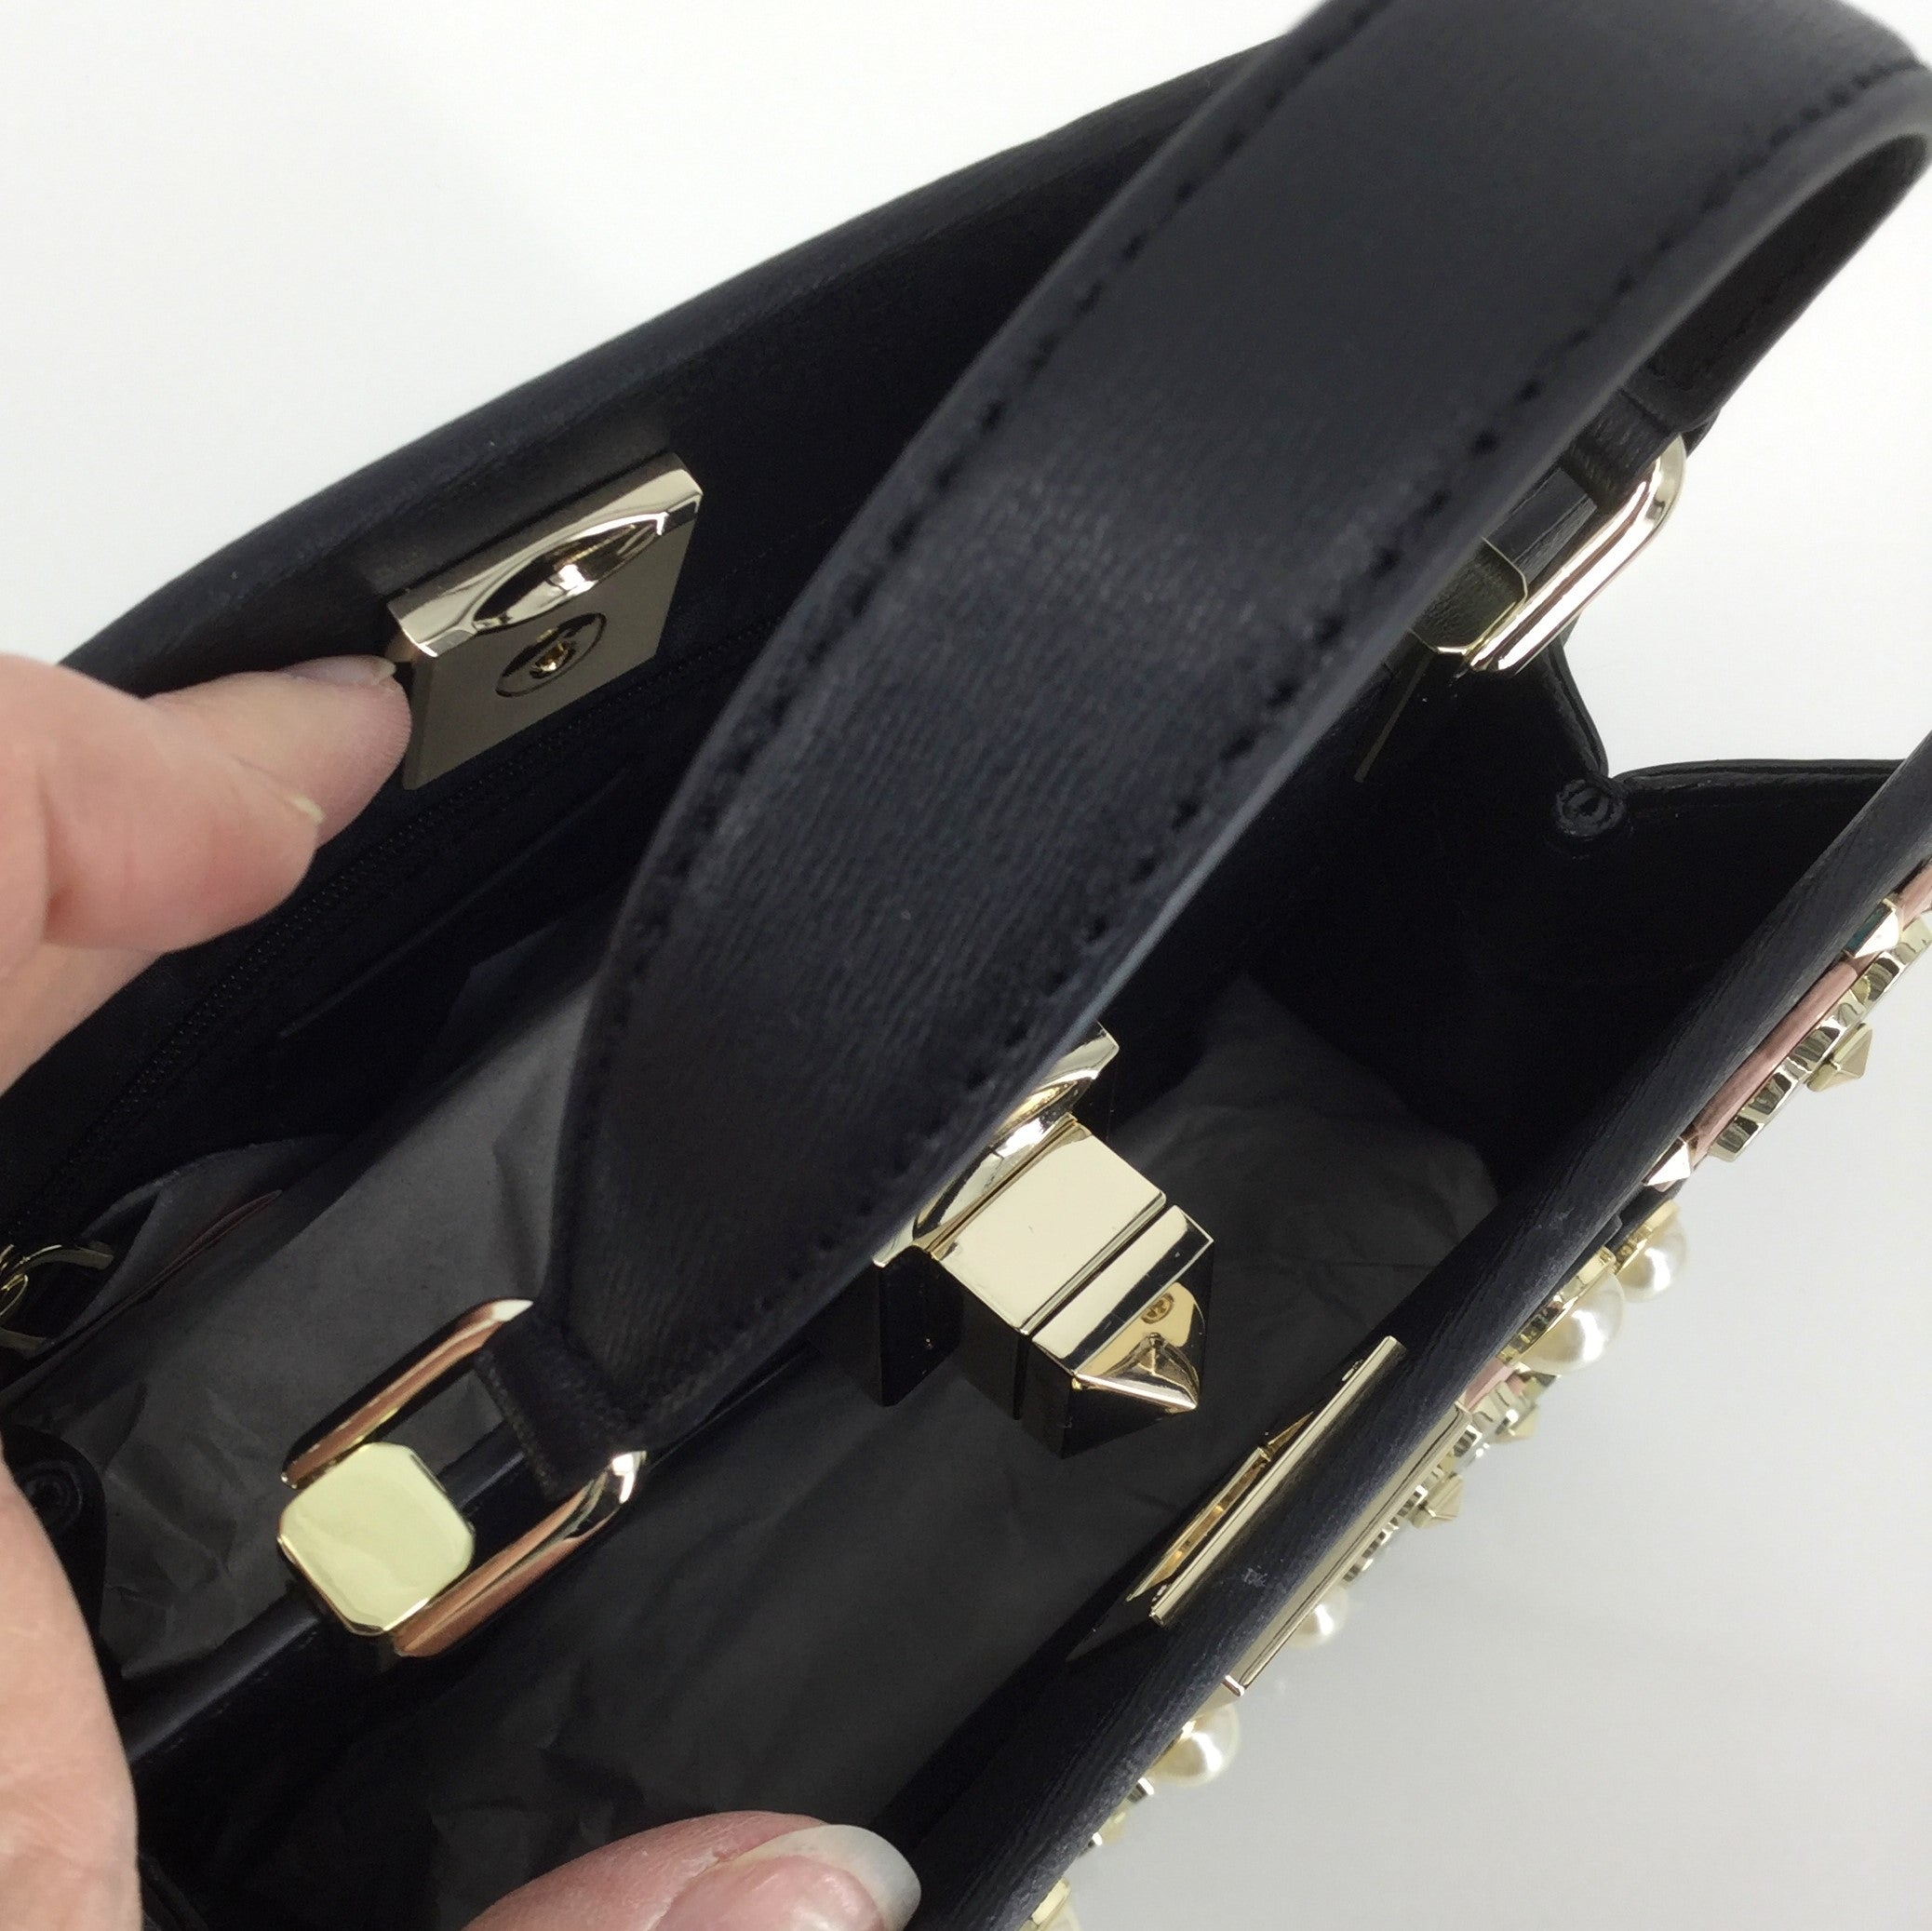 KATE SPADE KELLI DOUBLE COMPARTMENT CROSSBODY - LIKE NEW MINI CROSSBODY BY KATE SPADE NEW YORK. TEXTURED COW LEATHER WITH SILVER HARDWARE. TURNLOCK CLOSURE ON FRONT, SNAP BUTTON CLOSURE ON BACK. BLACK LINING WITH ONE ZIPPER POCKET INSIDE.